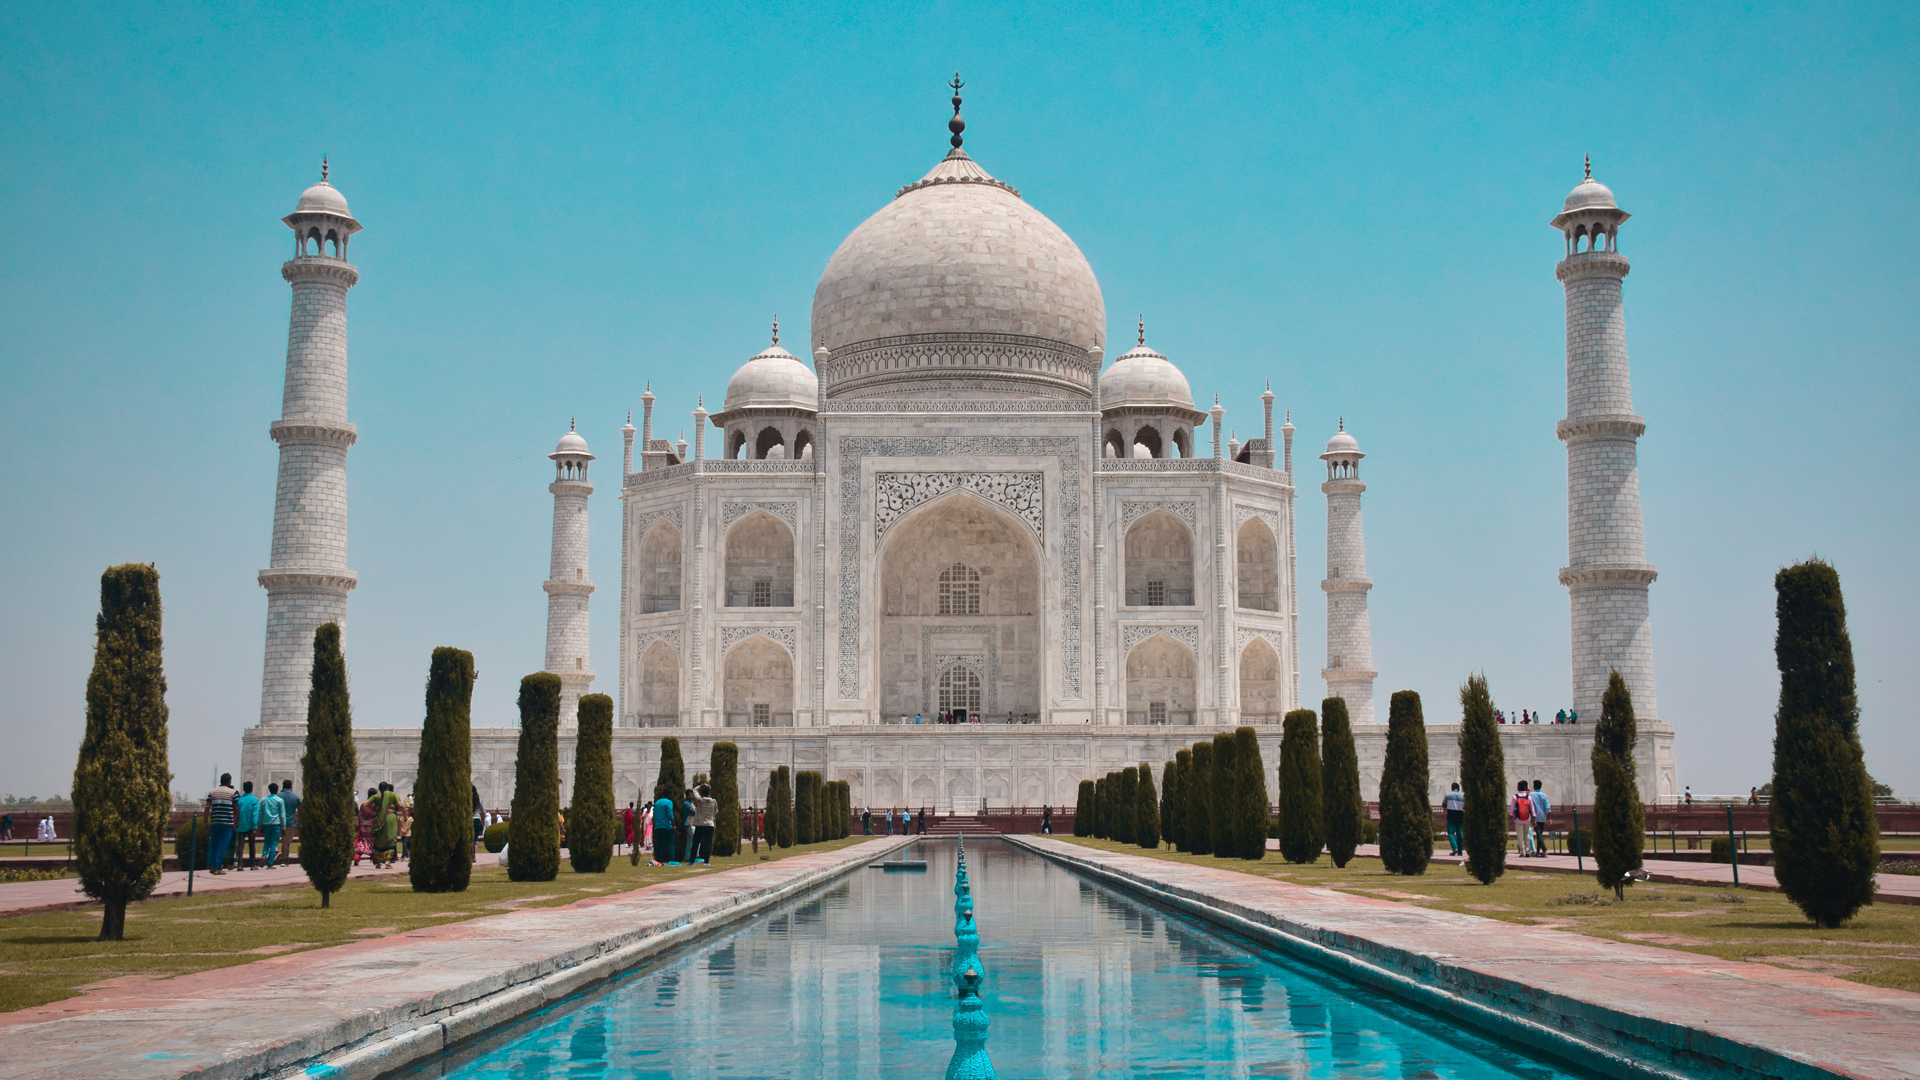 The Man Who's Building The Taj Mahal